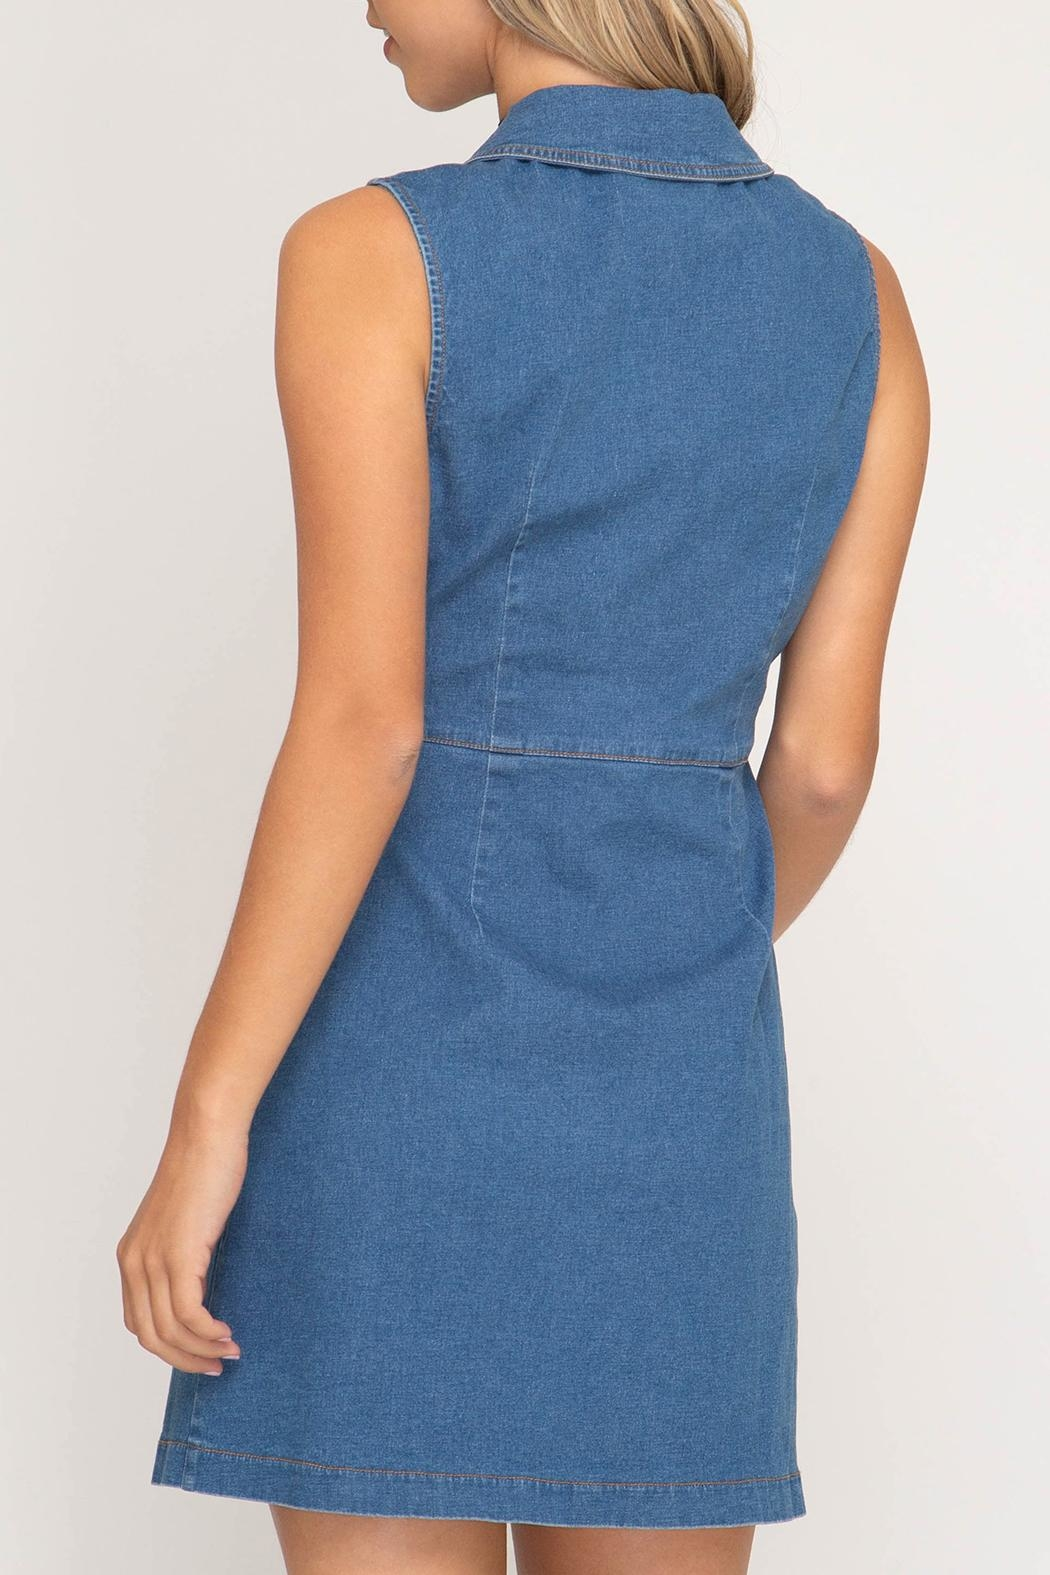 She + Sky Denim Button-Front Dress - Front Full Image